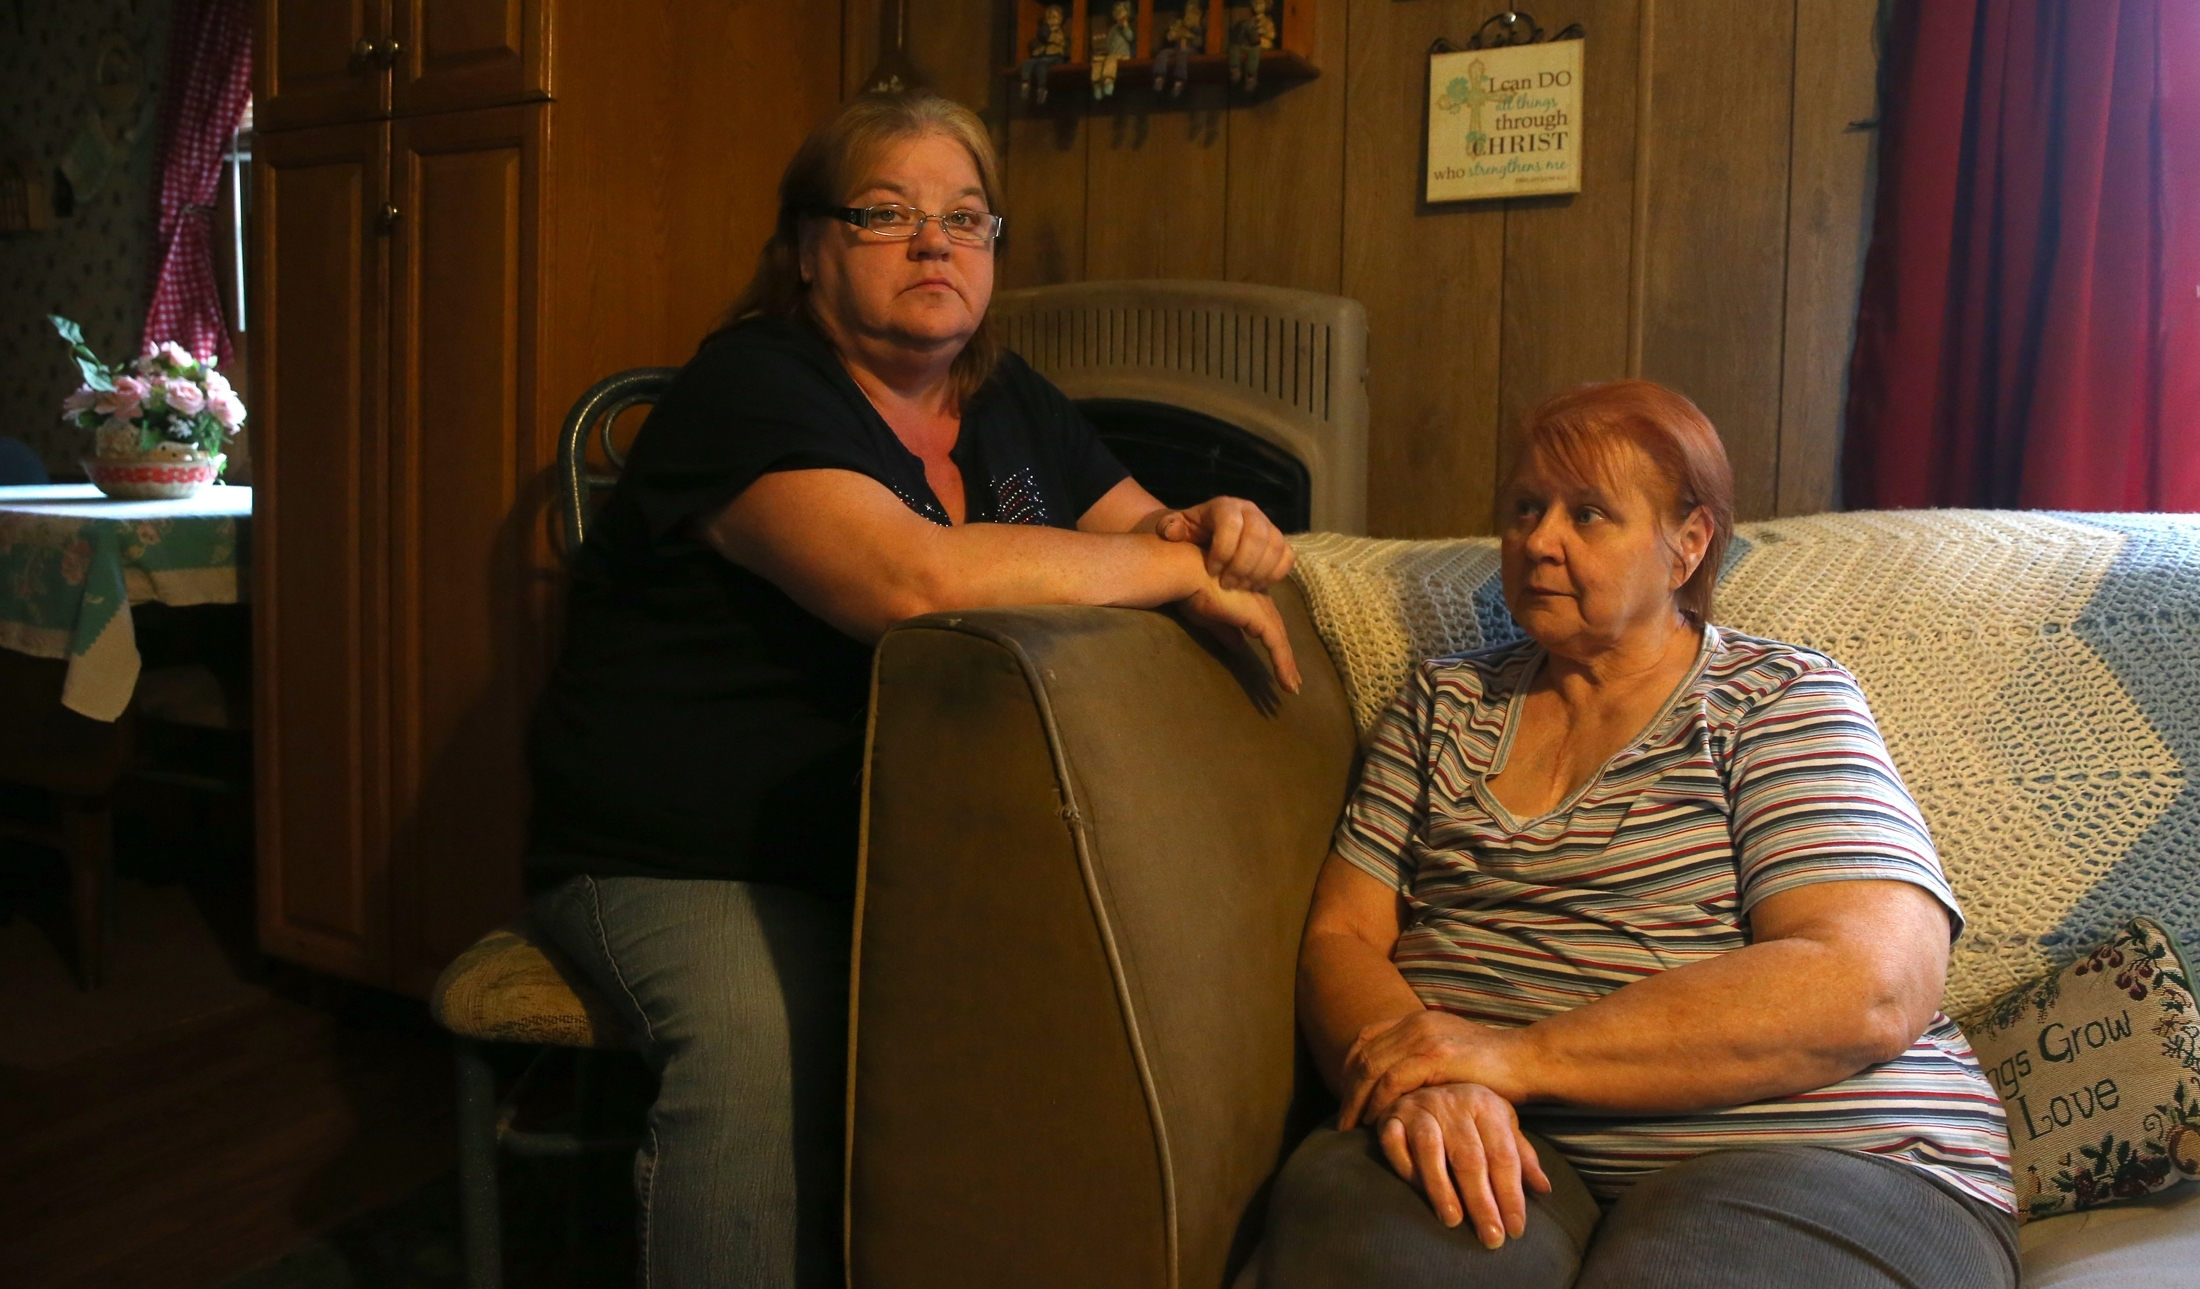 Debra Trammell, left, of Newfane and her stepmother Patricia Lord contracted Legionnaires' disease this summer. The two survived and were photographed at Lord's home in Middleport, N.Y. on Thursday Oct. 27, 2016. Richard Jepson of Lockport, Lord's ex-husband and Trammell's father, died July 22, 2016 from Legionnaires' disease. (John Hickey/Buffalo News)